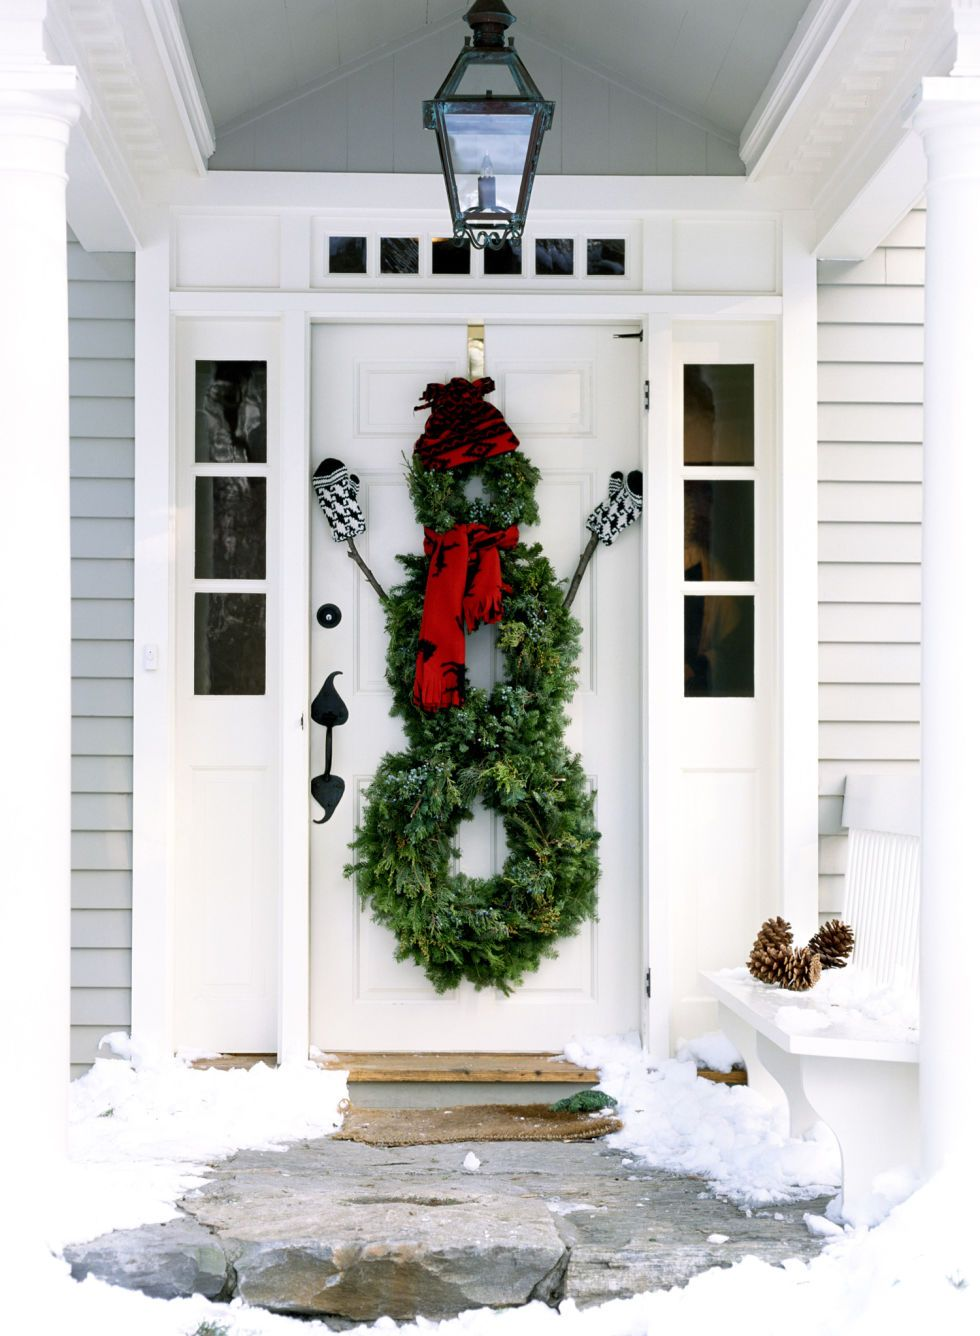 13 Outdoor Christmas Decorations That Are Simply Magical | Outdoor ...